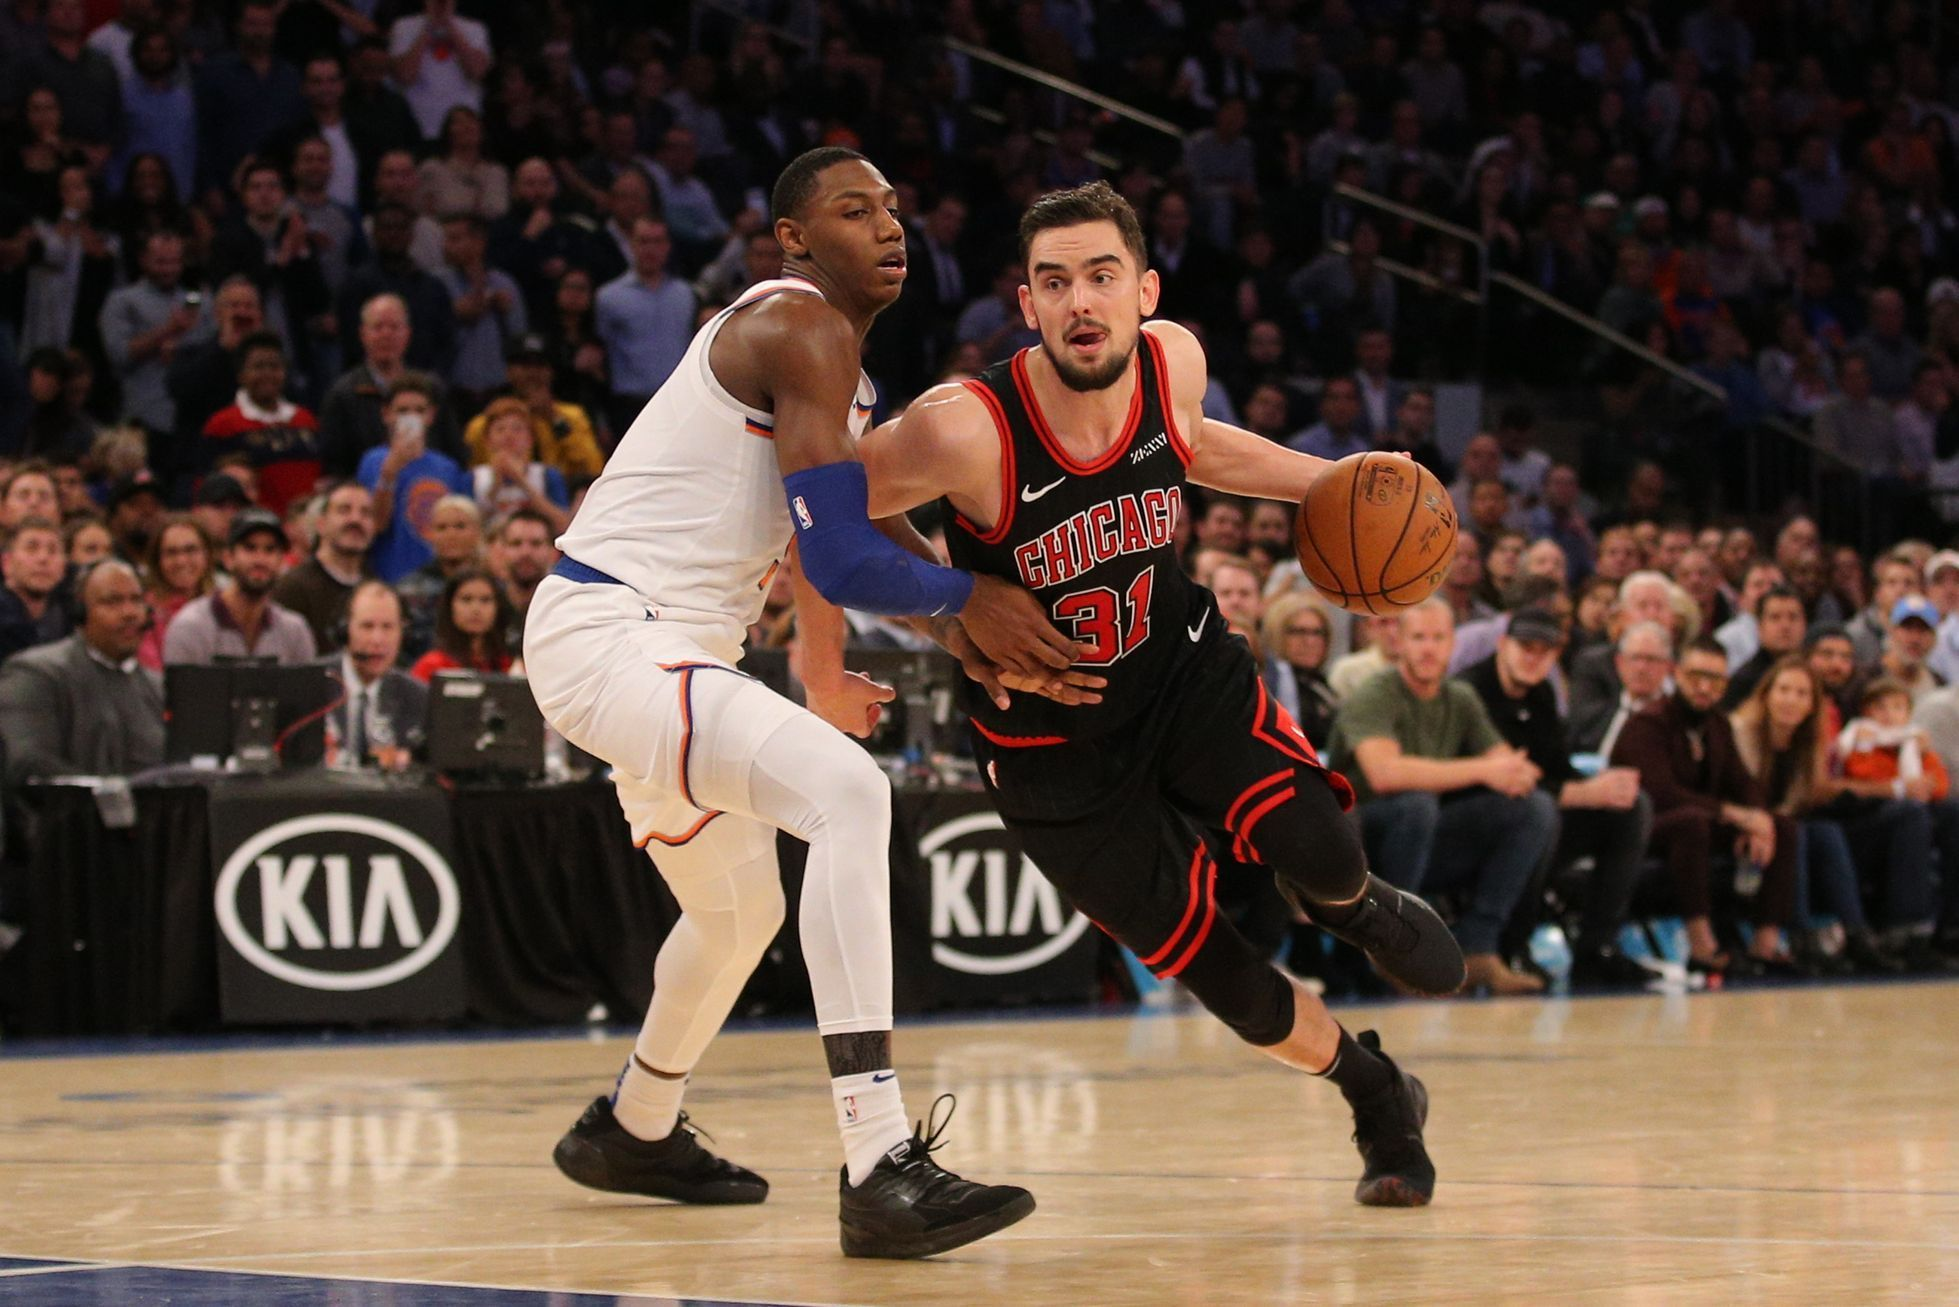 NBA: Chicago Bulls at New York Knicks, Tomáš Satoranský